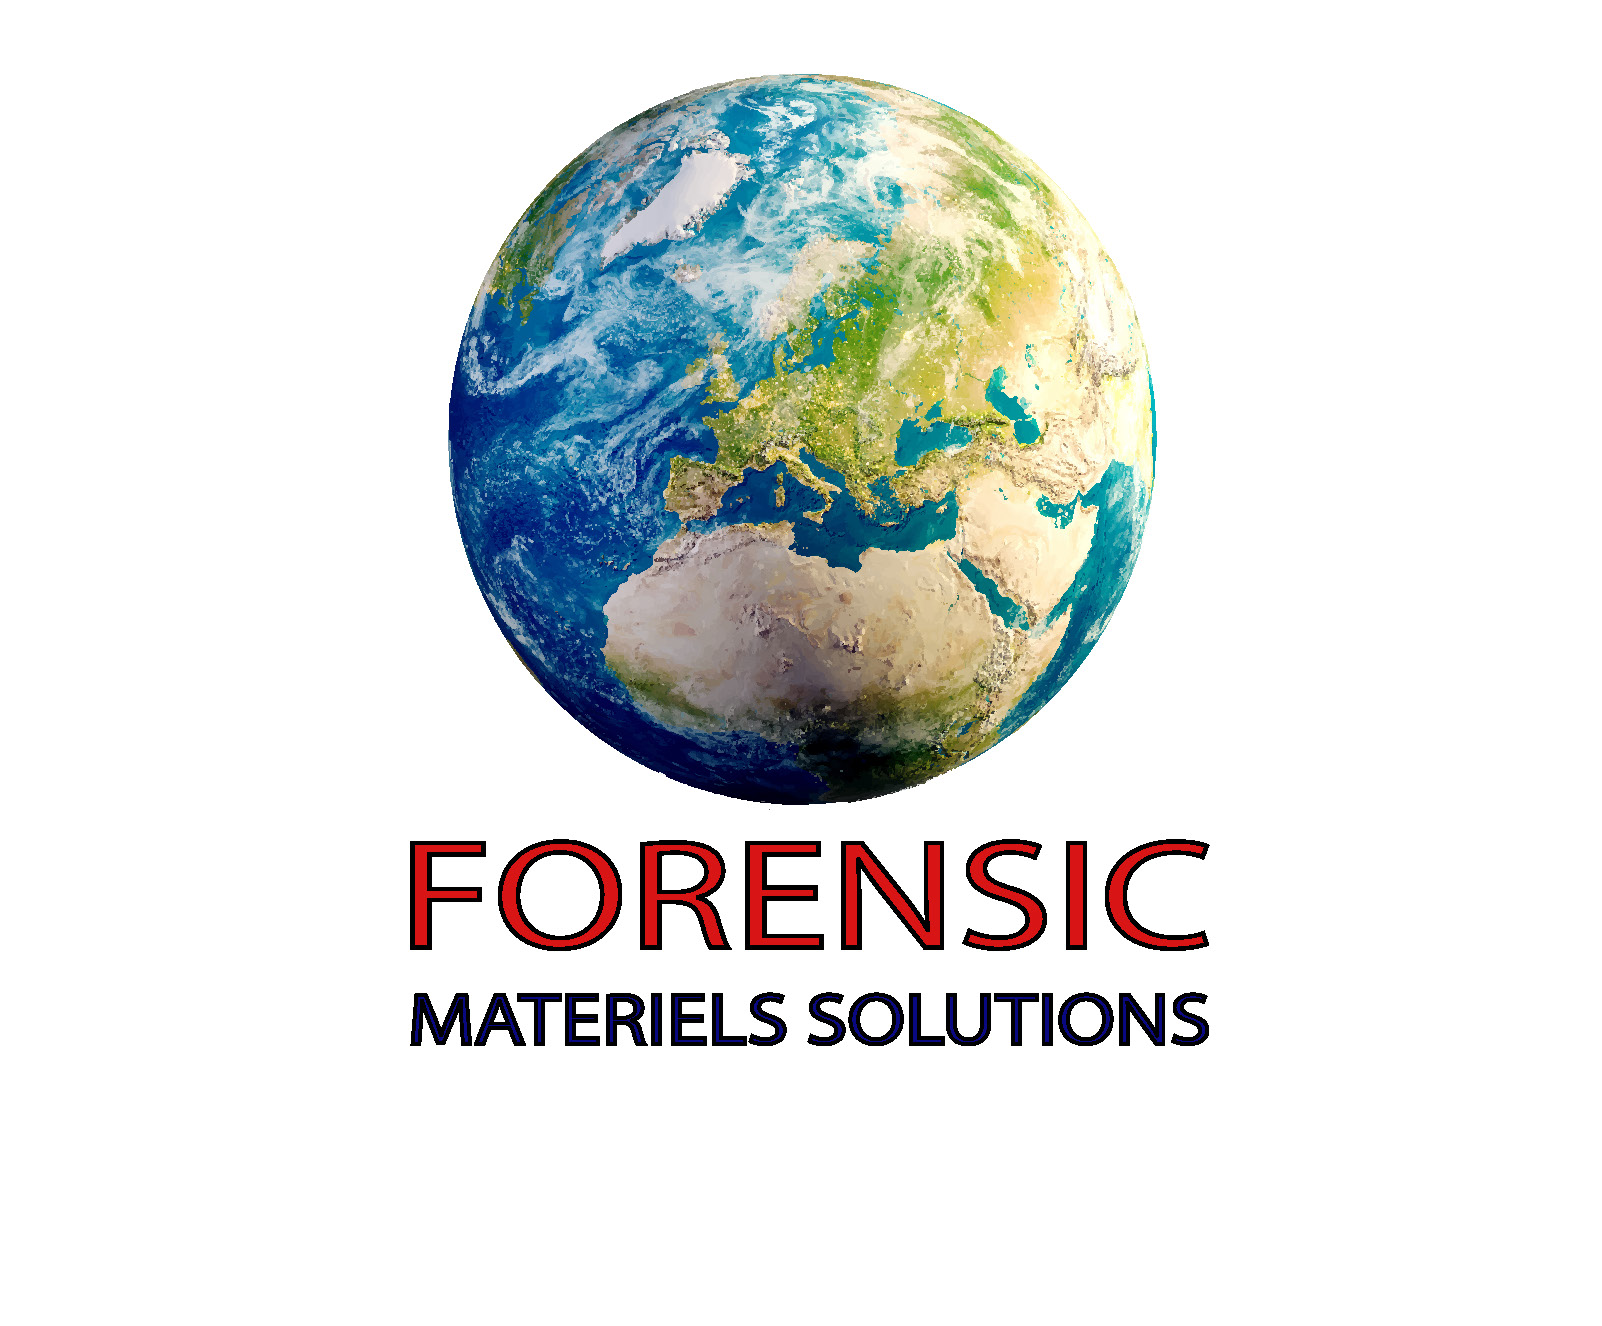 Forensic Matériels Solutions